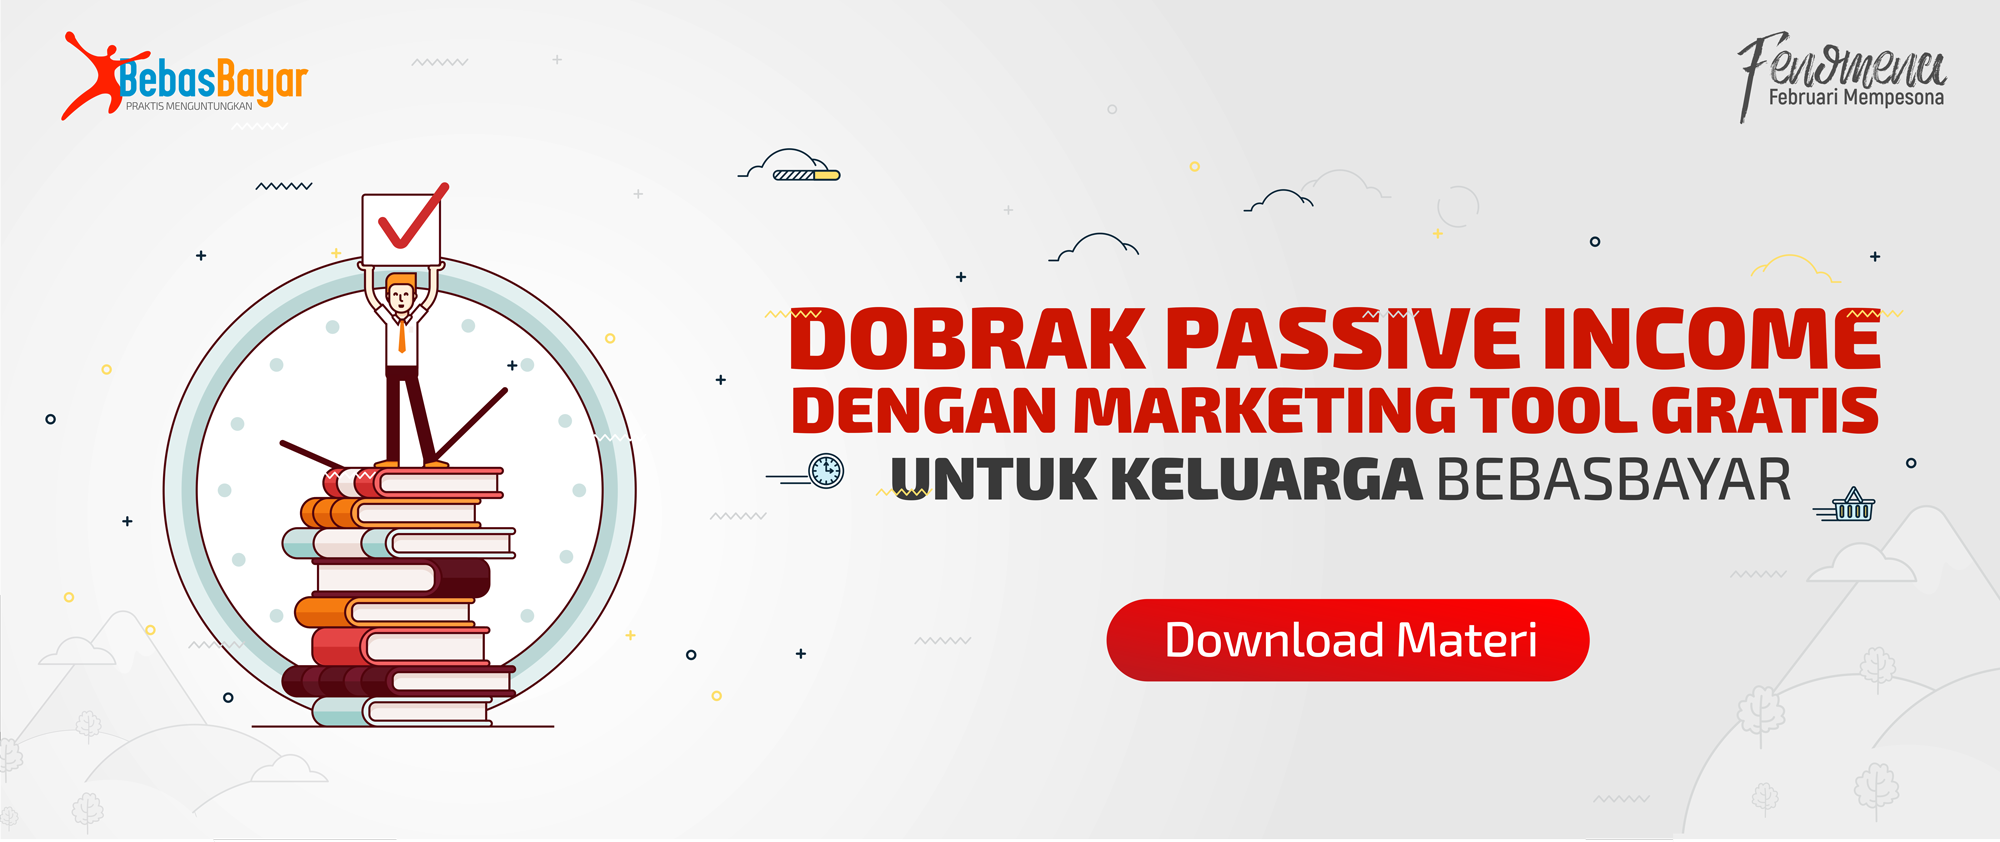 Dobrak Passive Income dengan Tools Marketing Gratis